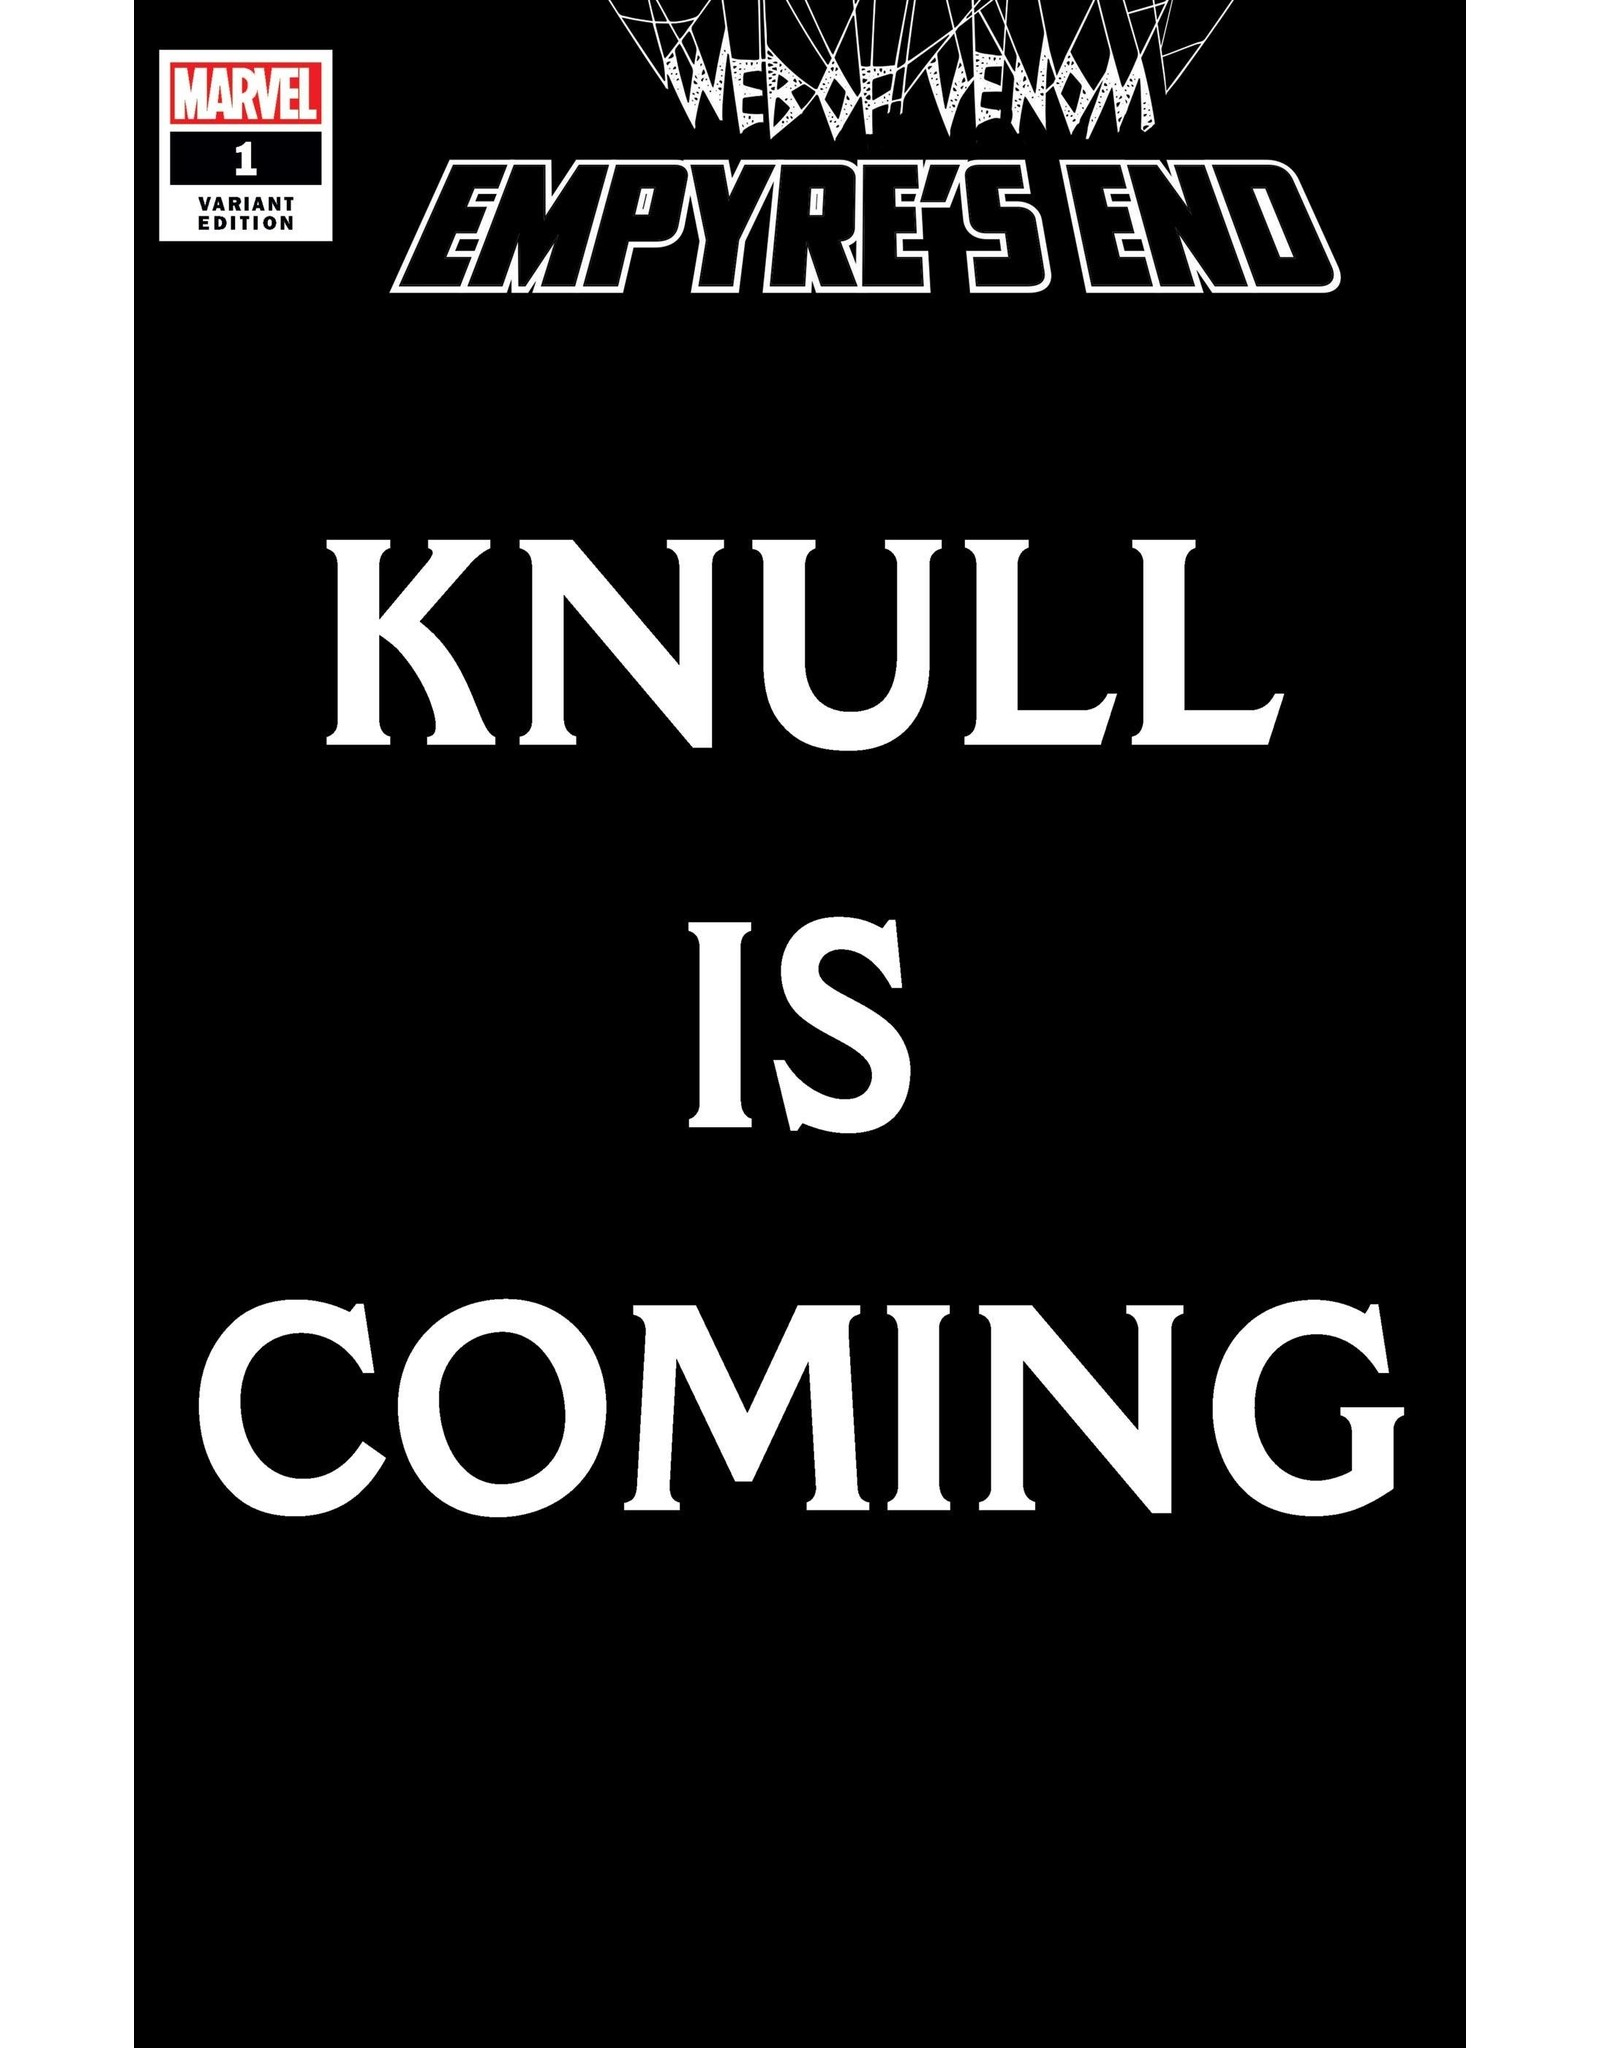 MARVEL COMICS WEB OF VENOM EMPYRES END #1 KNULL IS COMING VAR